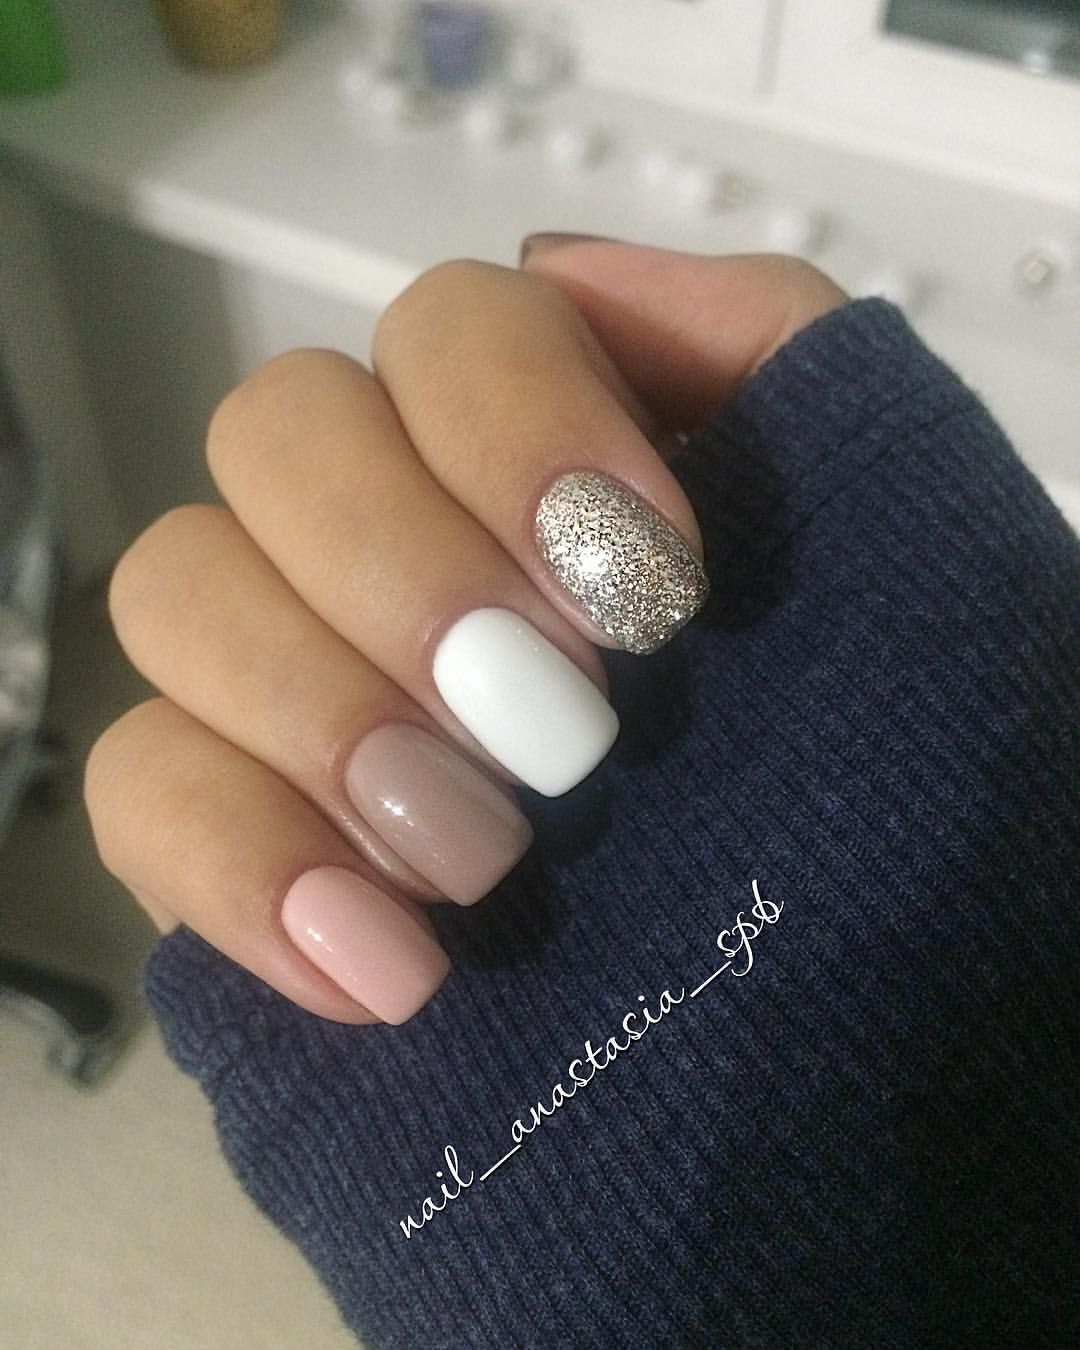 Pin by aida on manicure ideas pinterest makeup shellac nails